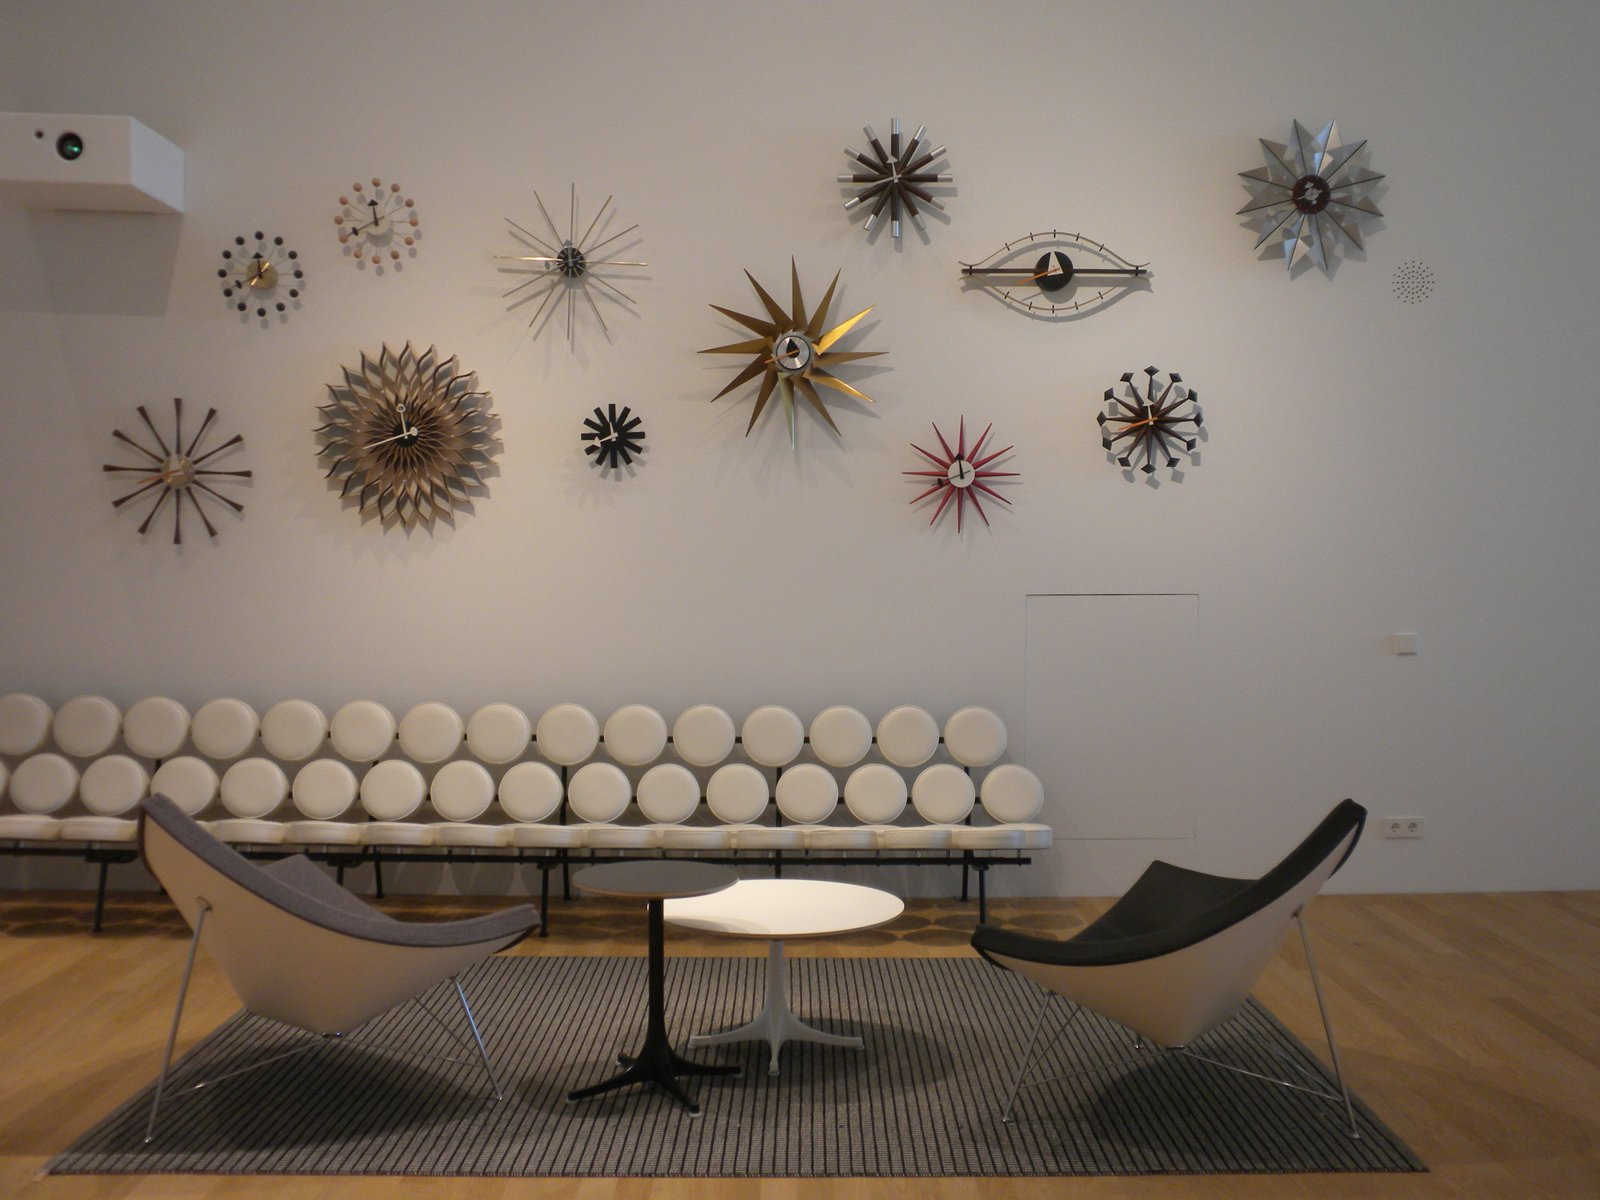 The area dedicated to designer George Nelson boasts the longest Marshmallow Sofa I've ever seen. Next to it are two of Nelson's Coconut chairs, designed in 1955, and above are an array of clocks by his hand.  Inside the VitraHaus by Miyoko Ohtake